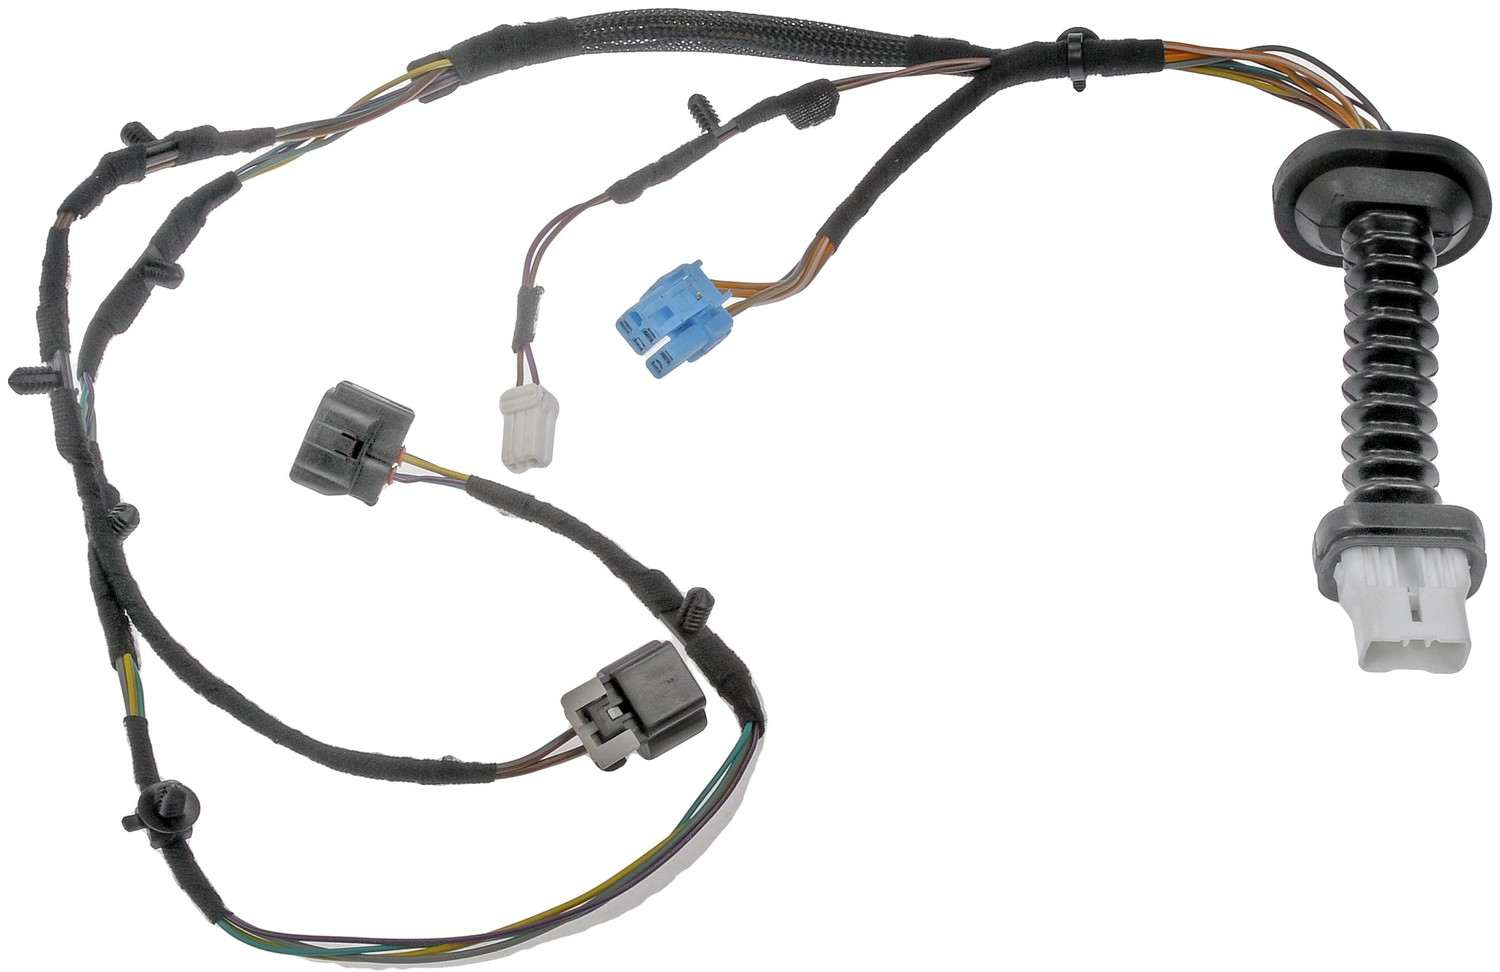 Dodge Door Wiring Harness Free Diagram For You 2007 Ram 2500 Wire Dorman 645 506 Fits 04 05 1500 06 Rear 2004